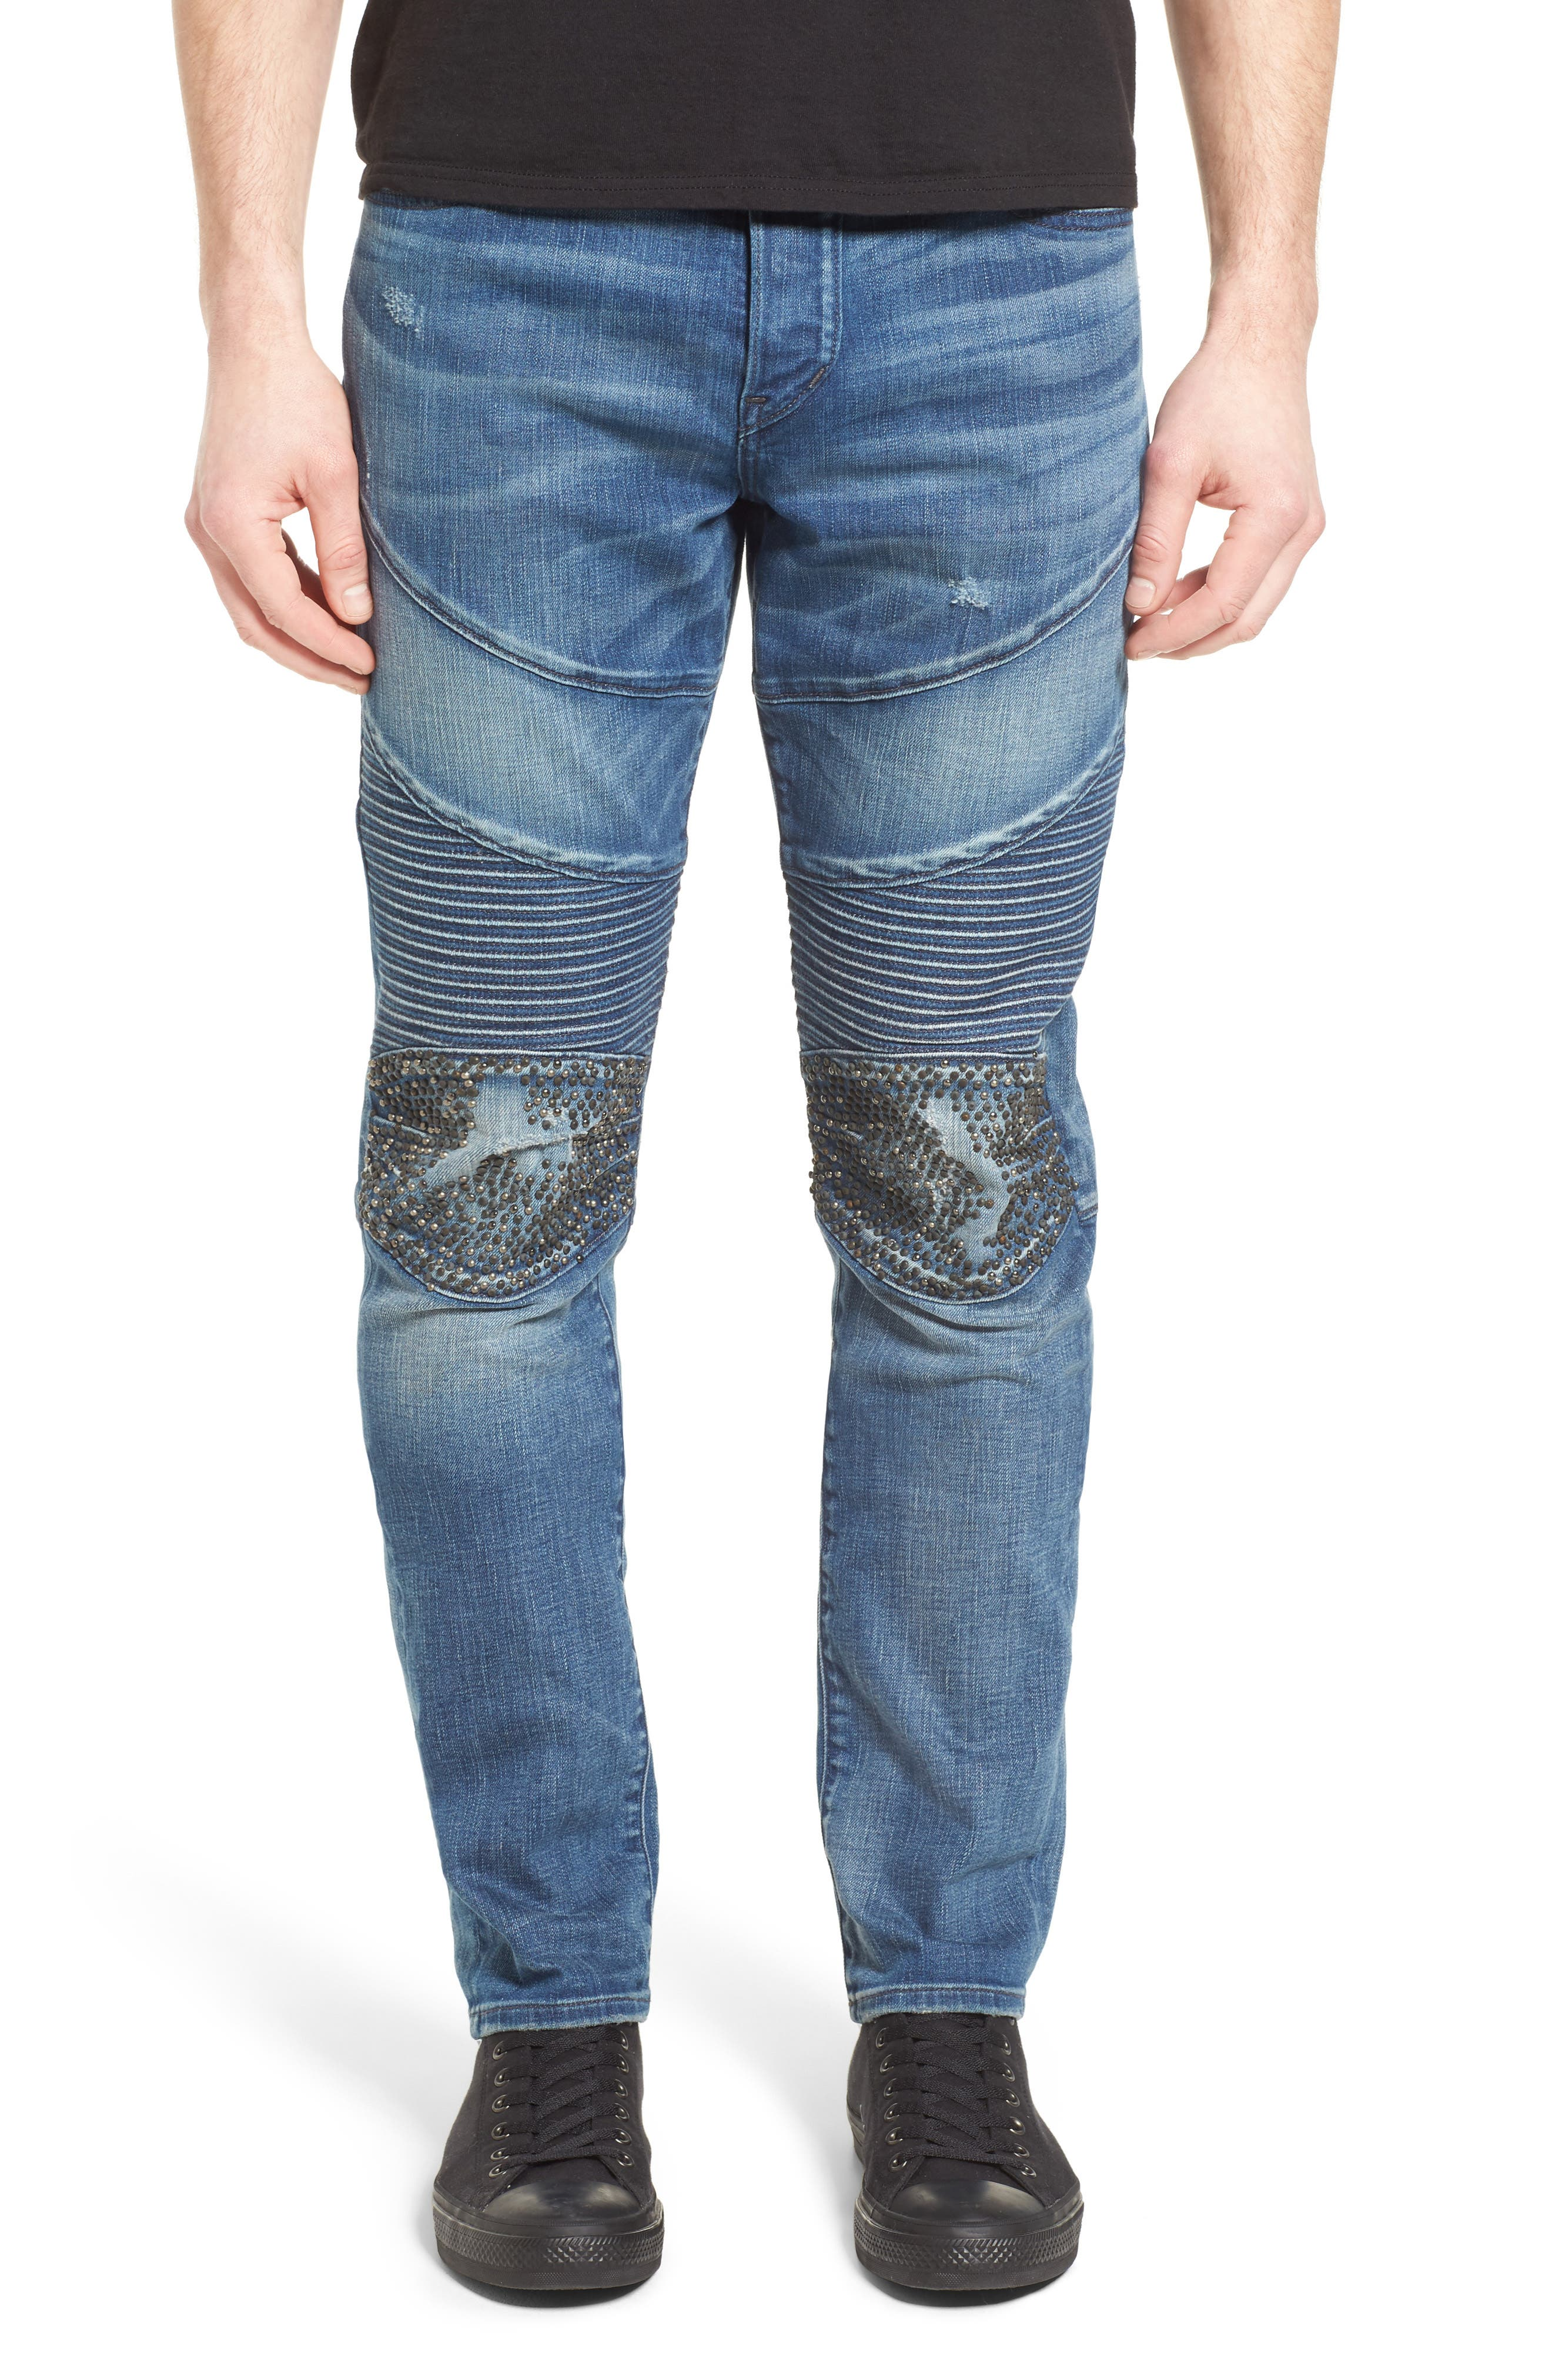 TRUE RELIGION BRAND JEANS,                             Rocco Skinny Fit Jeans,                             Main thumbnail 1, color,                             ENDLESS ROAD